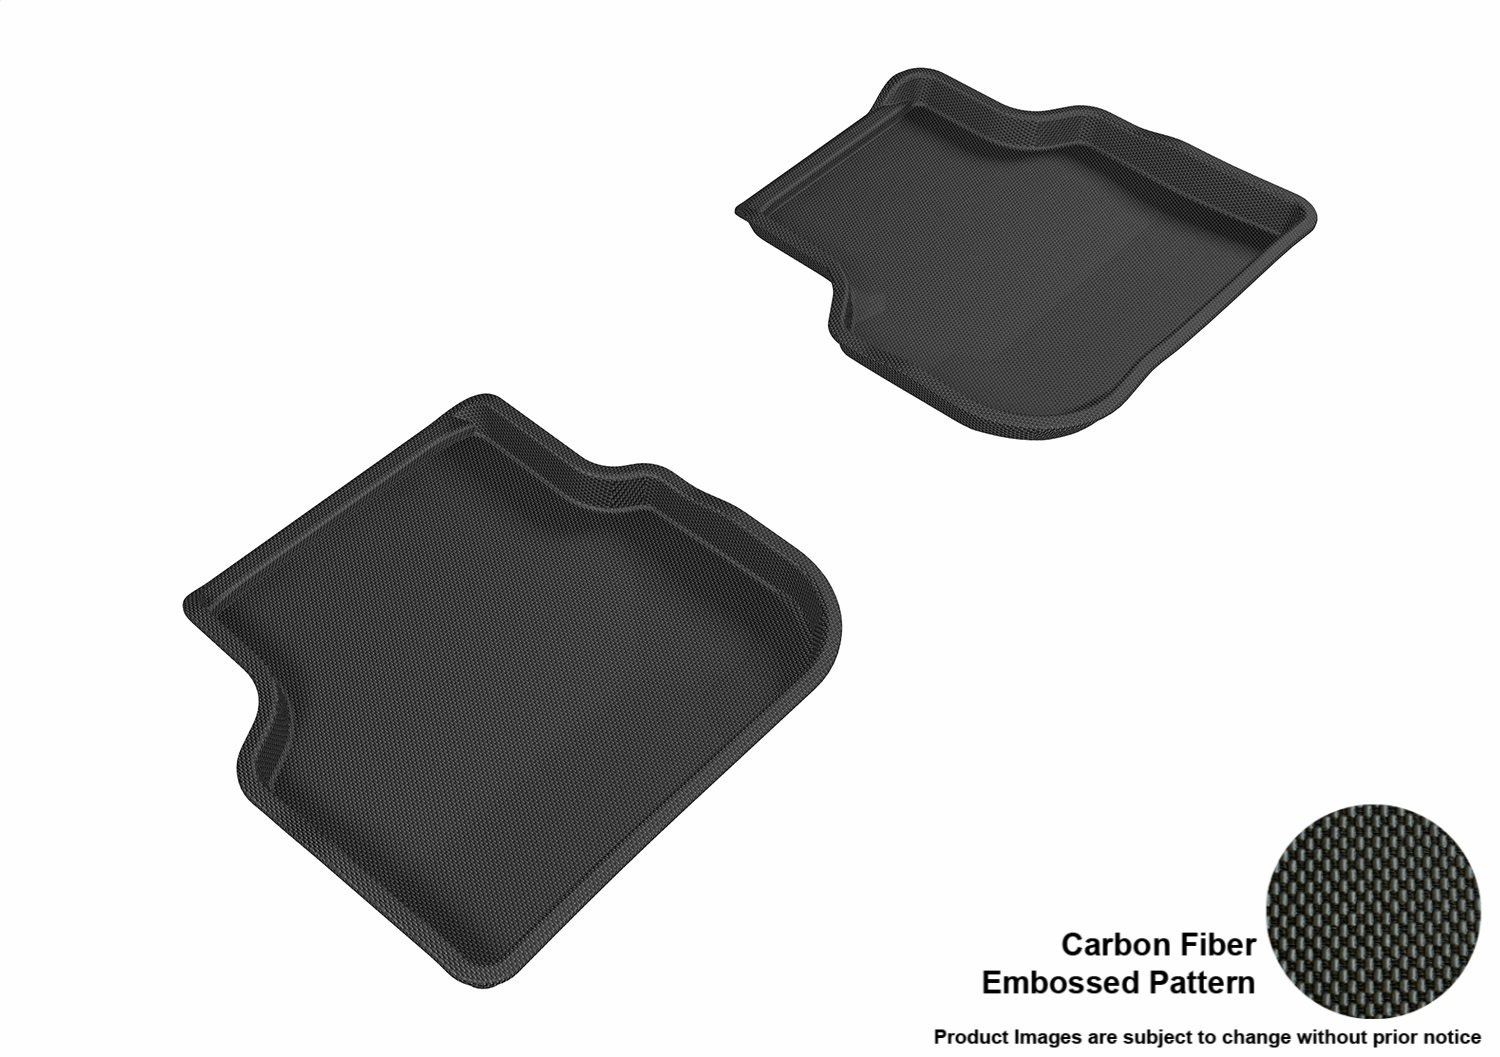 3D MAXpider Second Row Custom Fit All-Weather Floor Mat for Select Volkswagen Jetta Models Kagu Rubber L1VW05521509